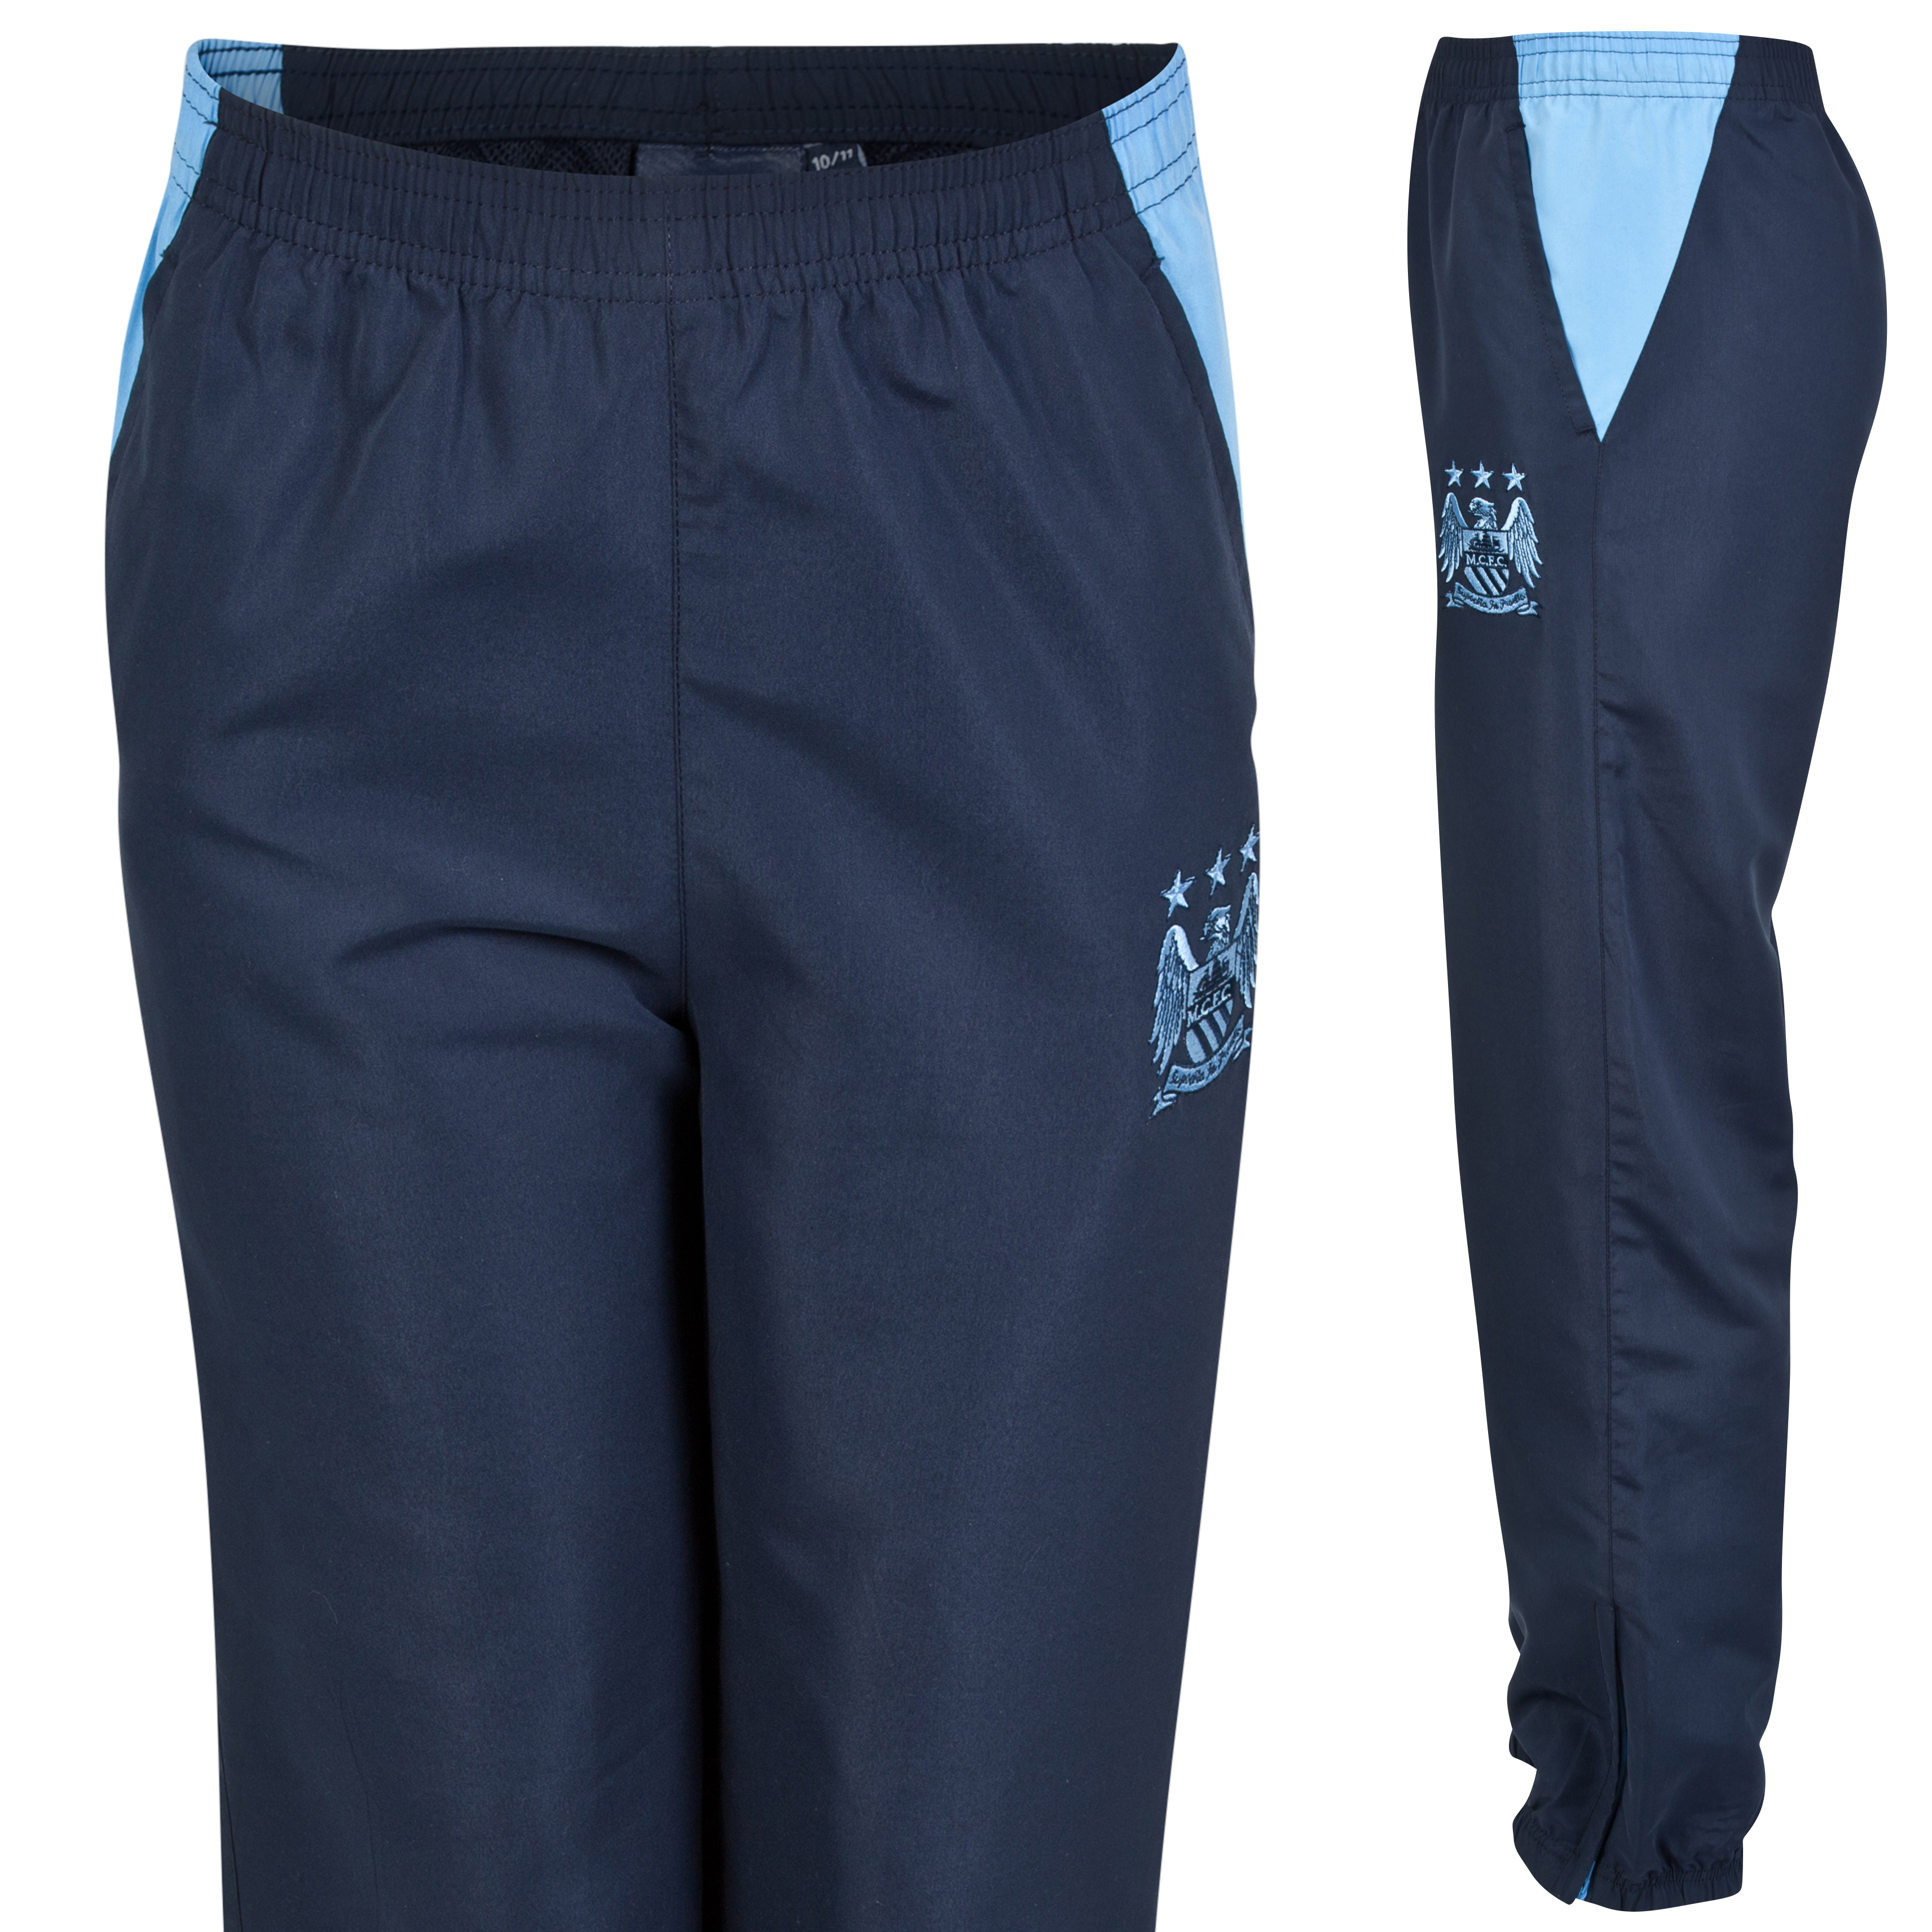 Manchester City Classic Track Pants - Navy - Infant Boys